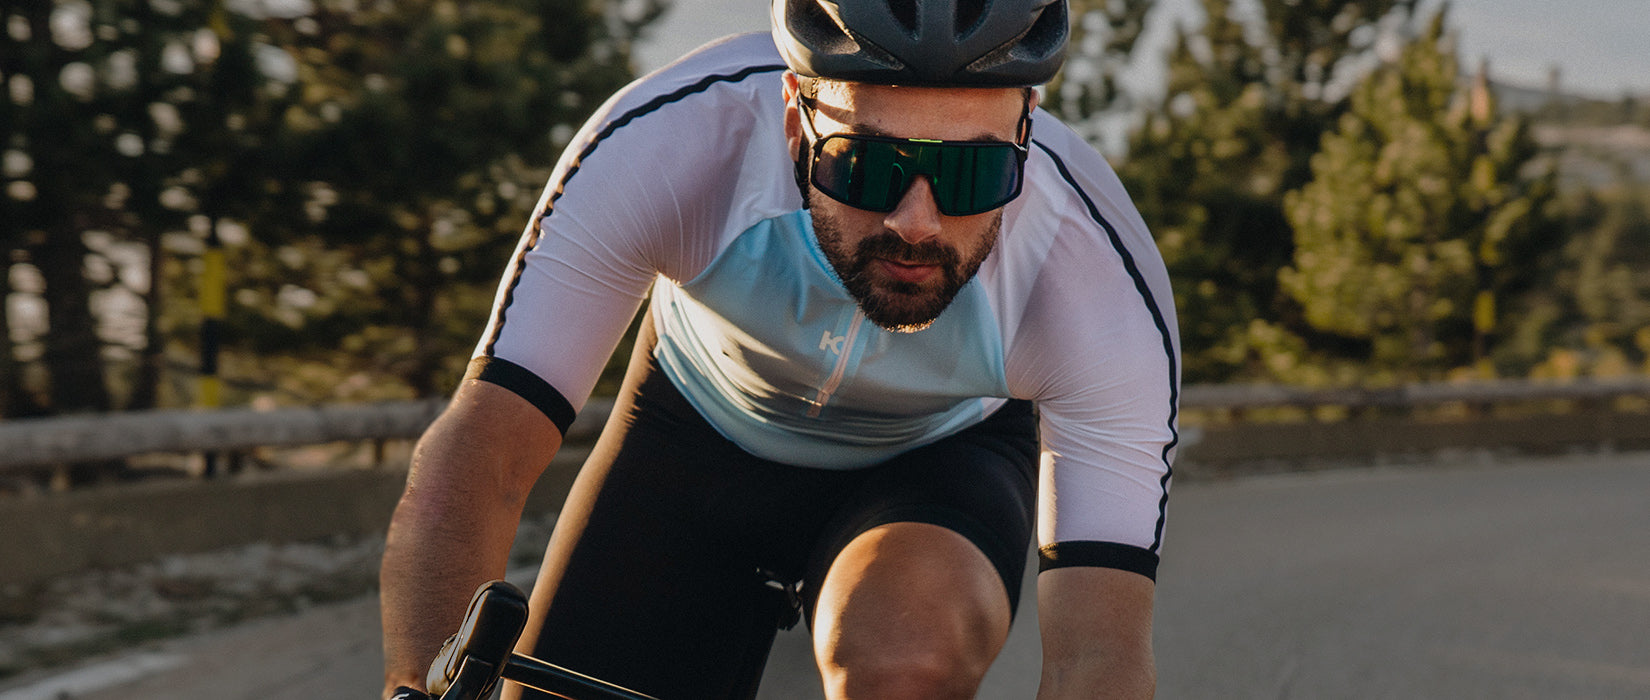 katusha NANO Collection - Ultra Lightweight Cycling Apparel